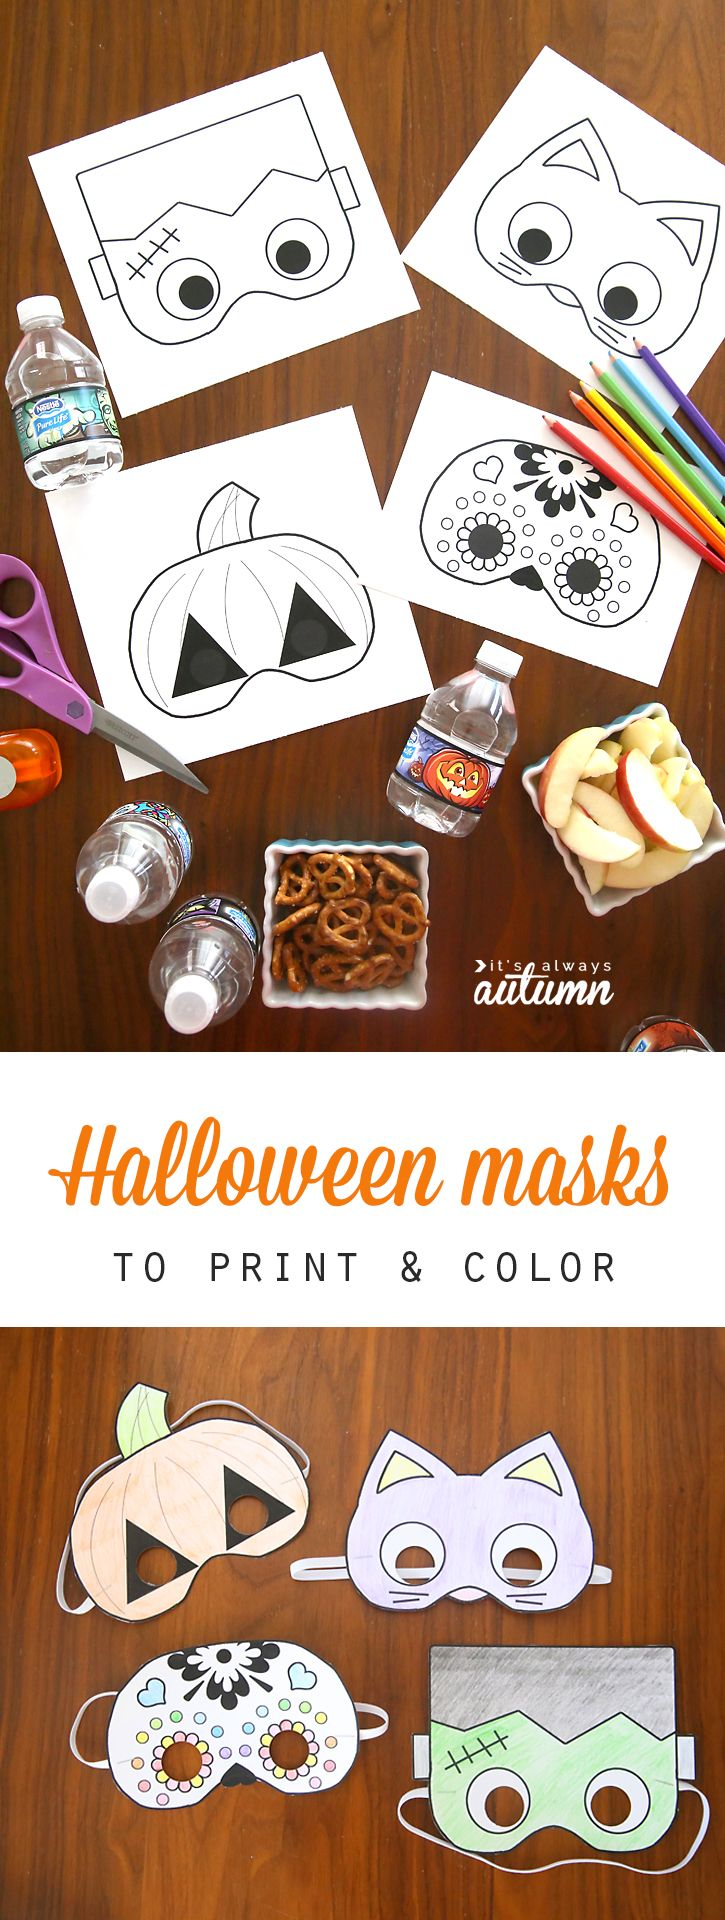 Uncategorized Halloween Crafts For Kids To Make best 25 halloween crafts for kids ideas on pinterest masks to print and color